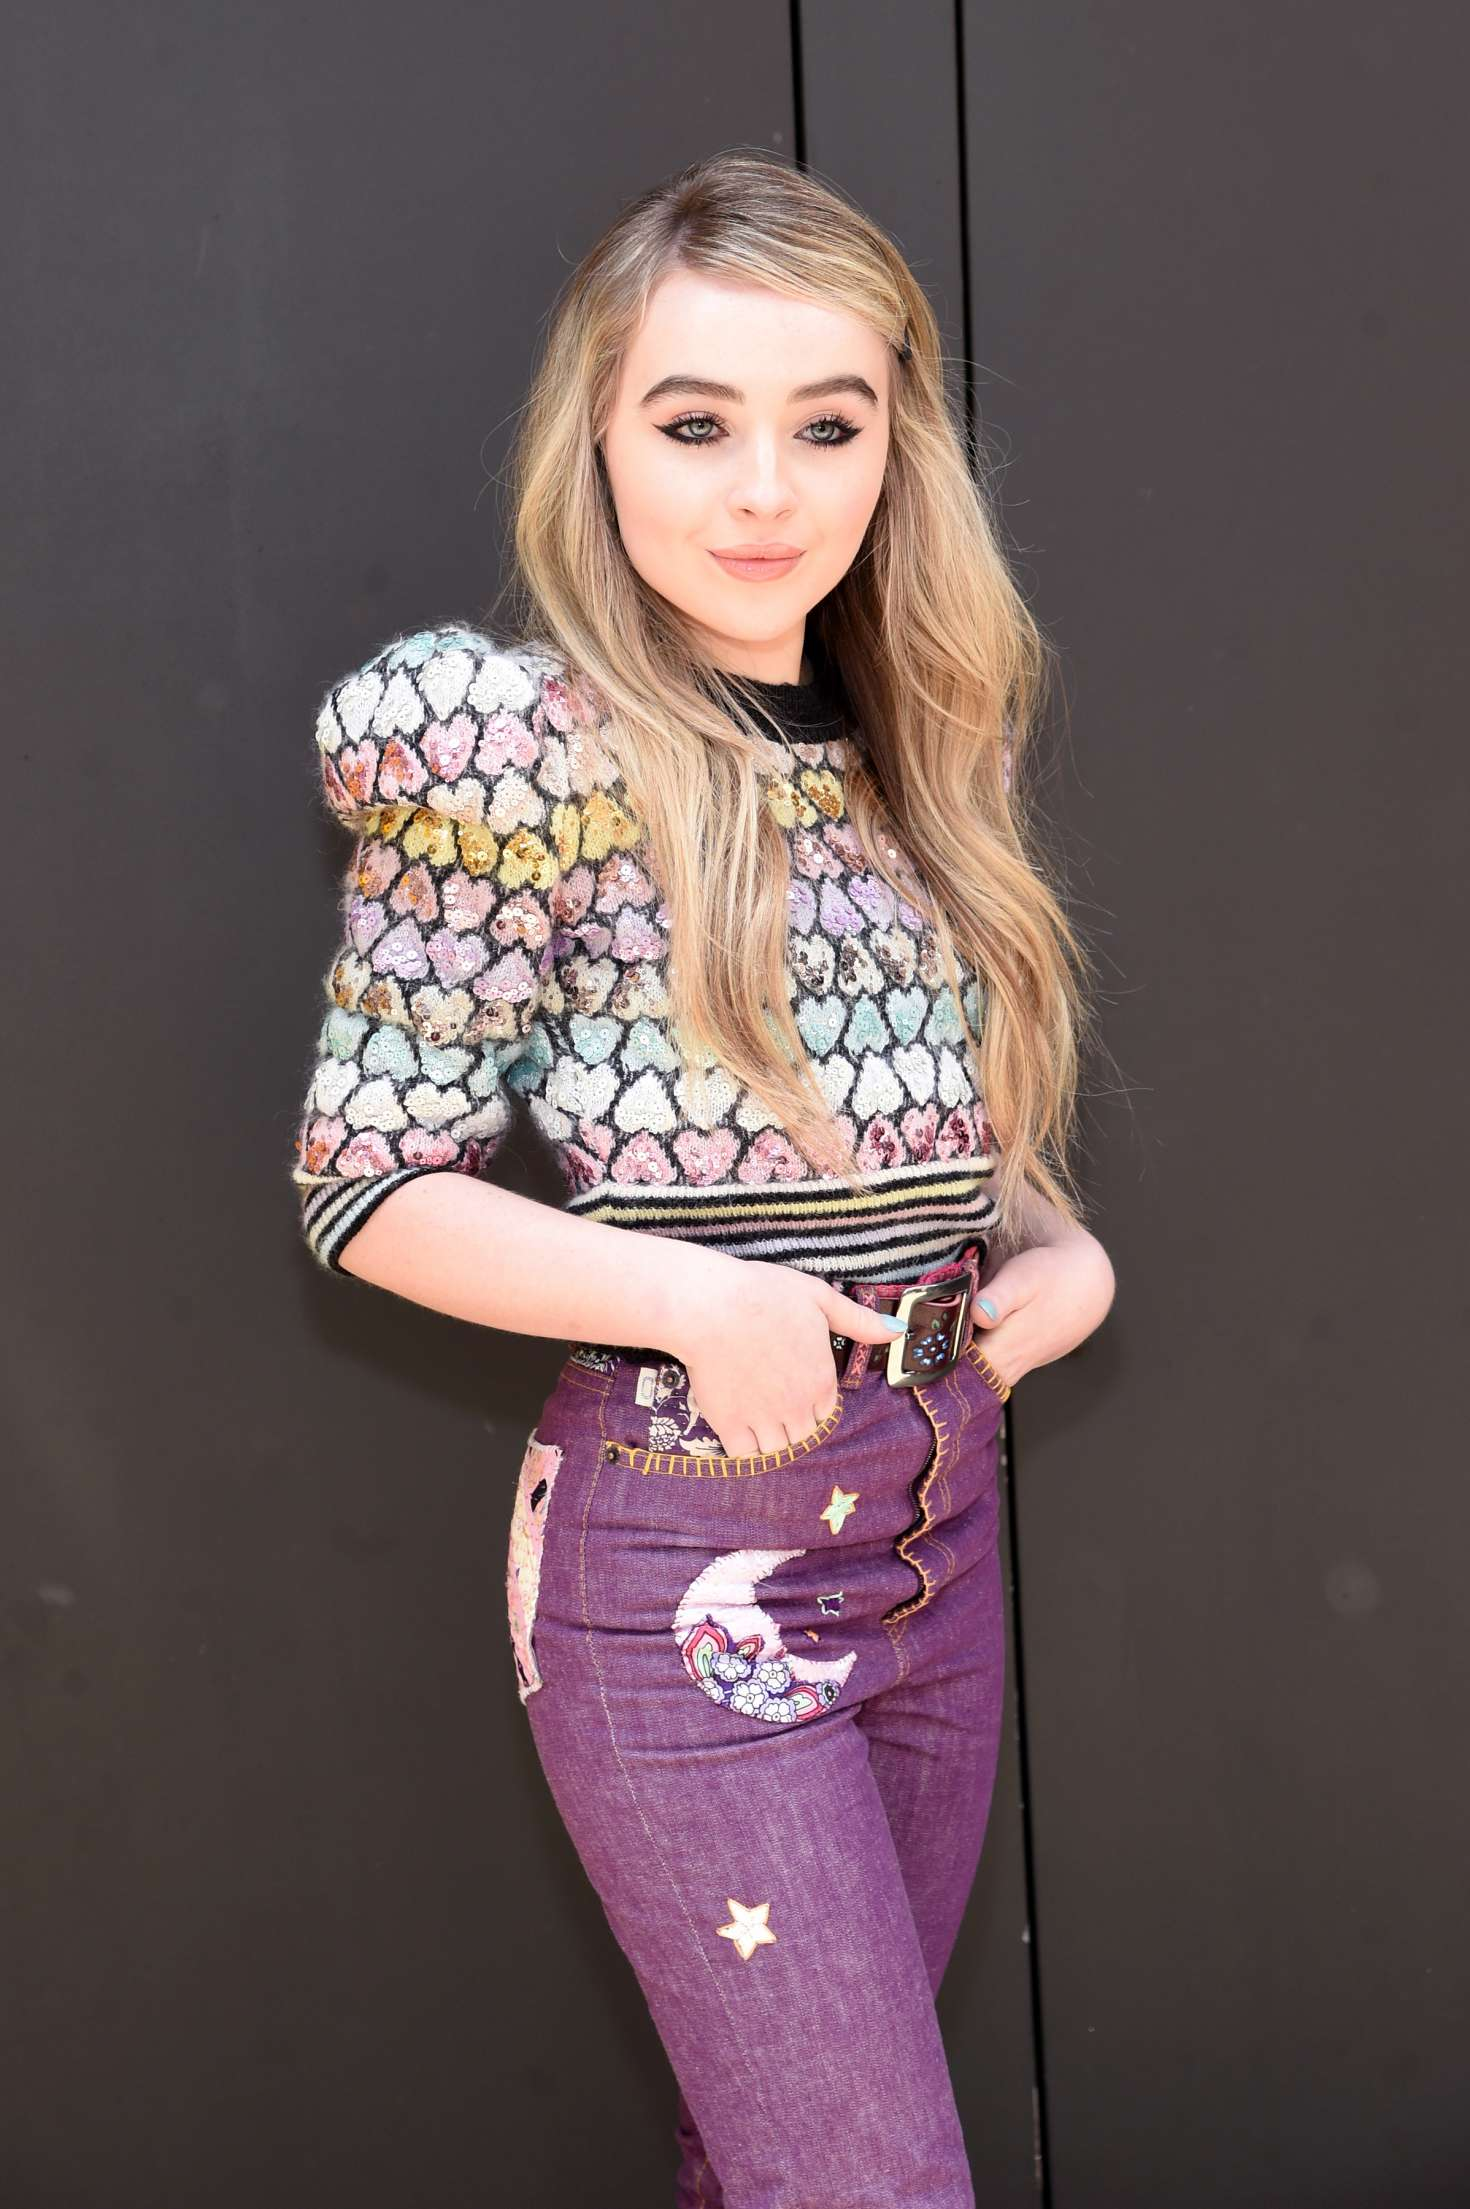 Sabrina Carpenter - Arrives at Marc Jacobs Show 2017 in NYC